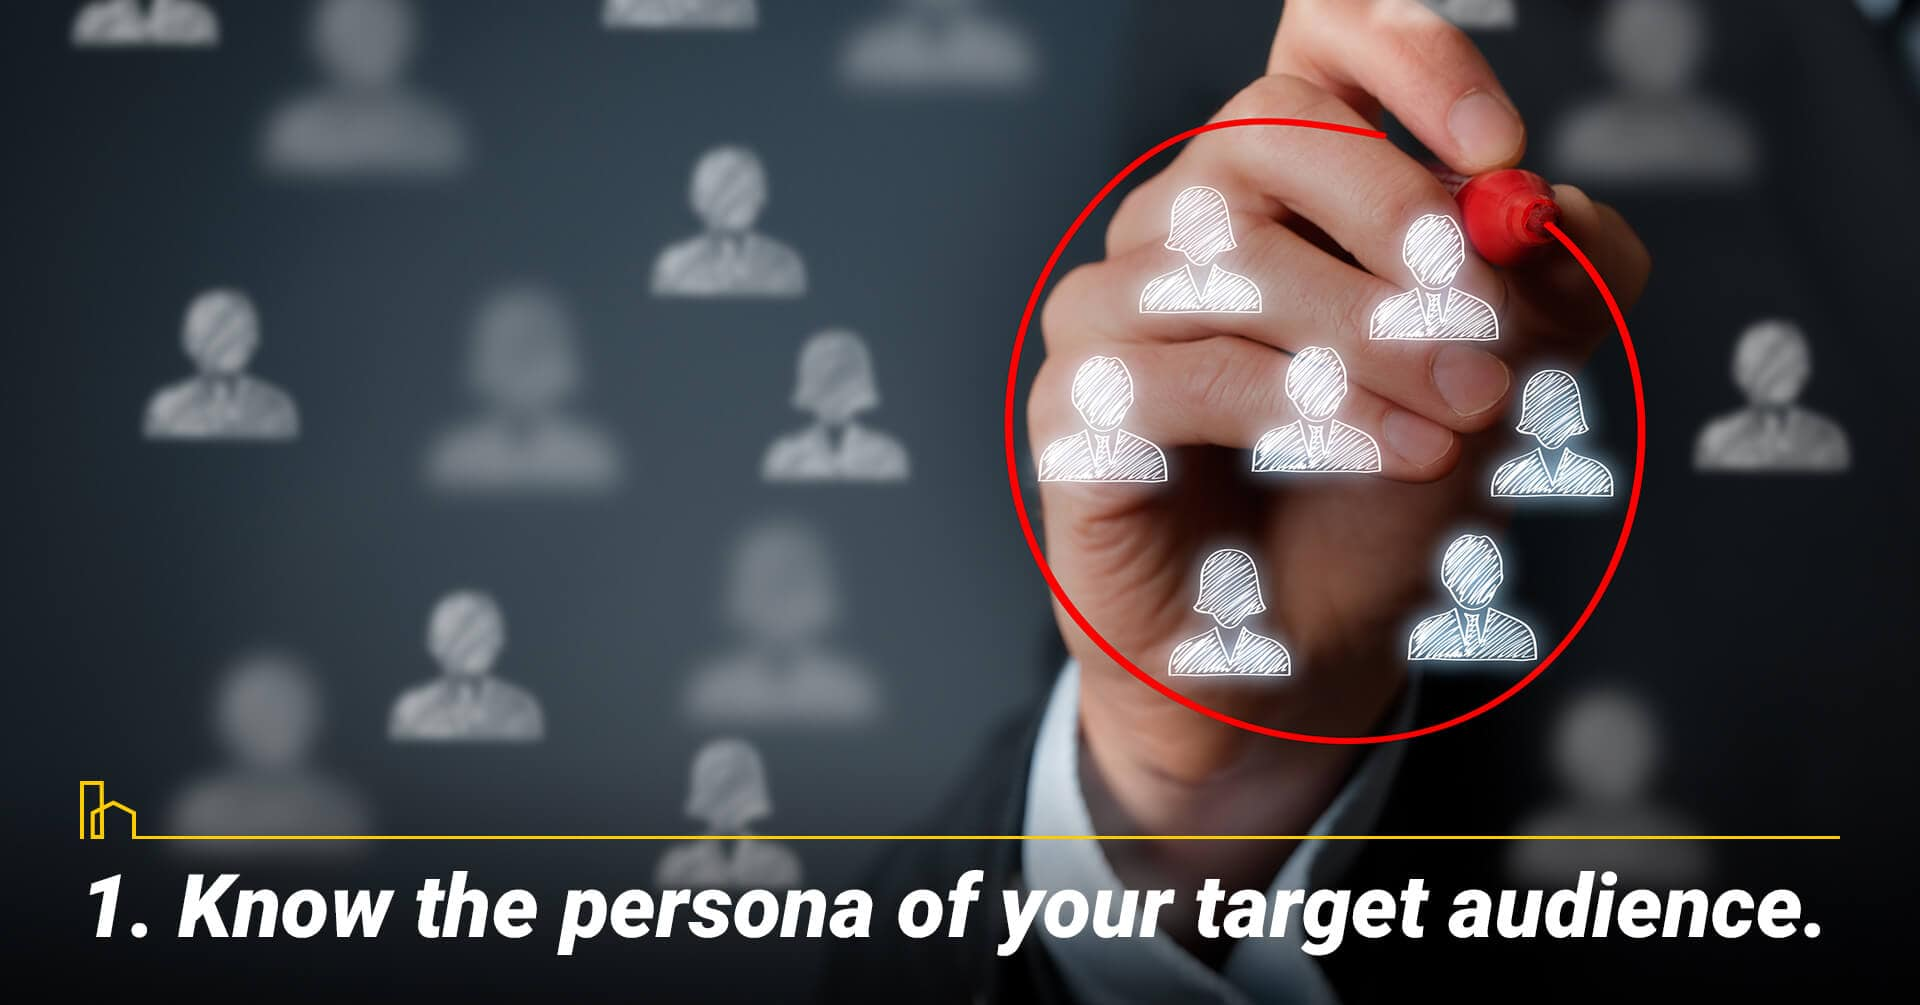 Know the persona of your target audience